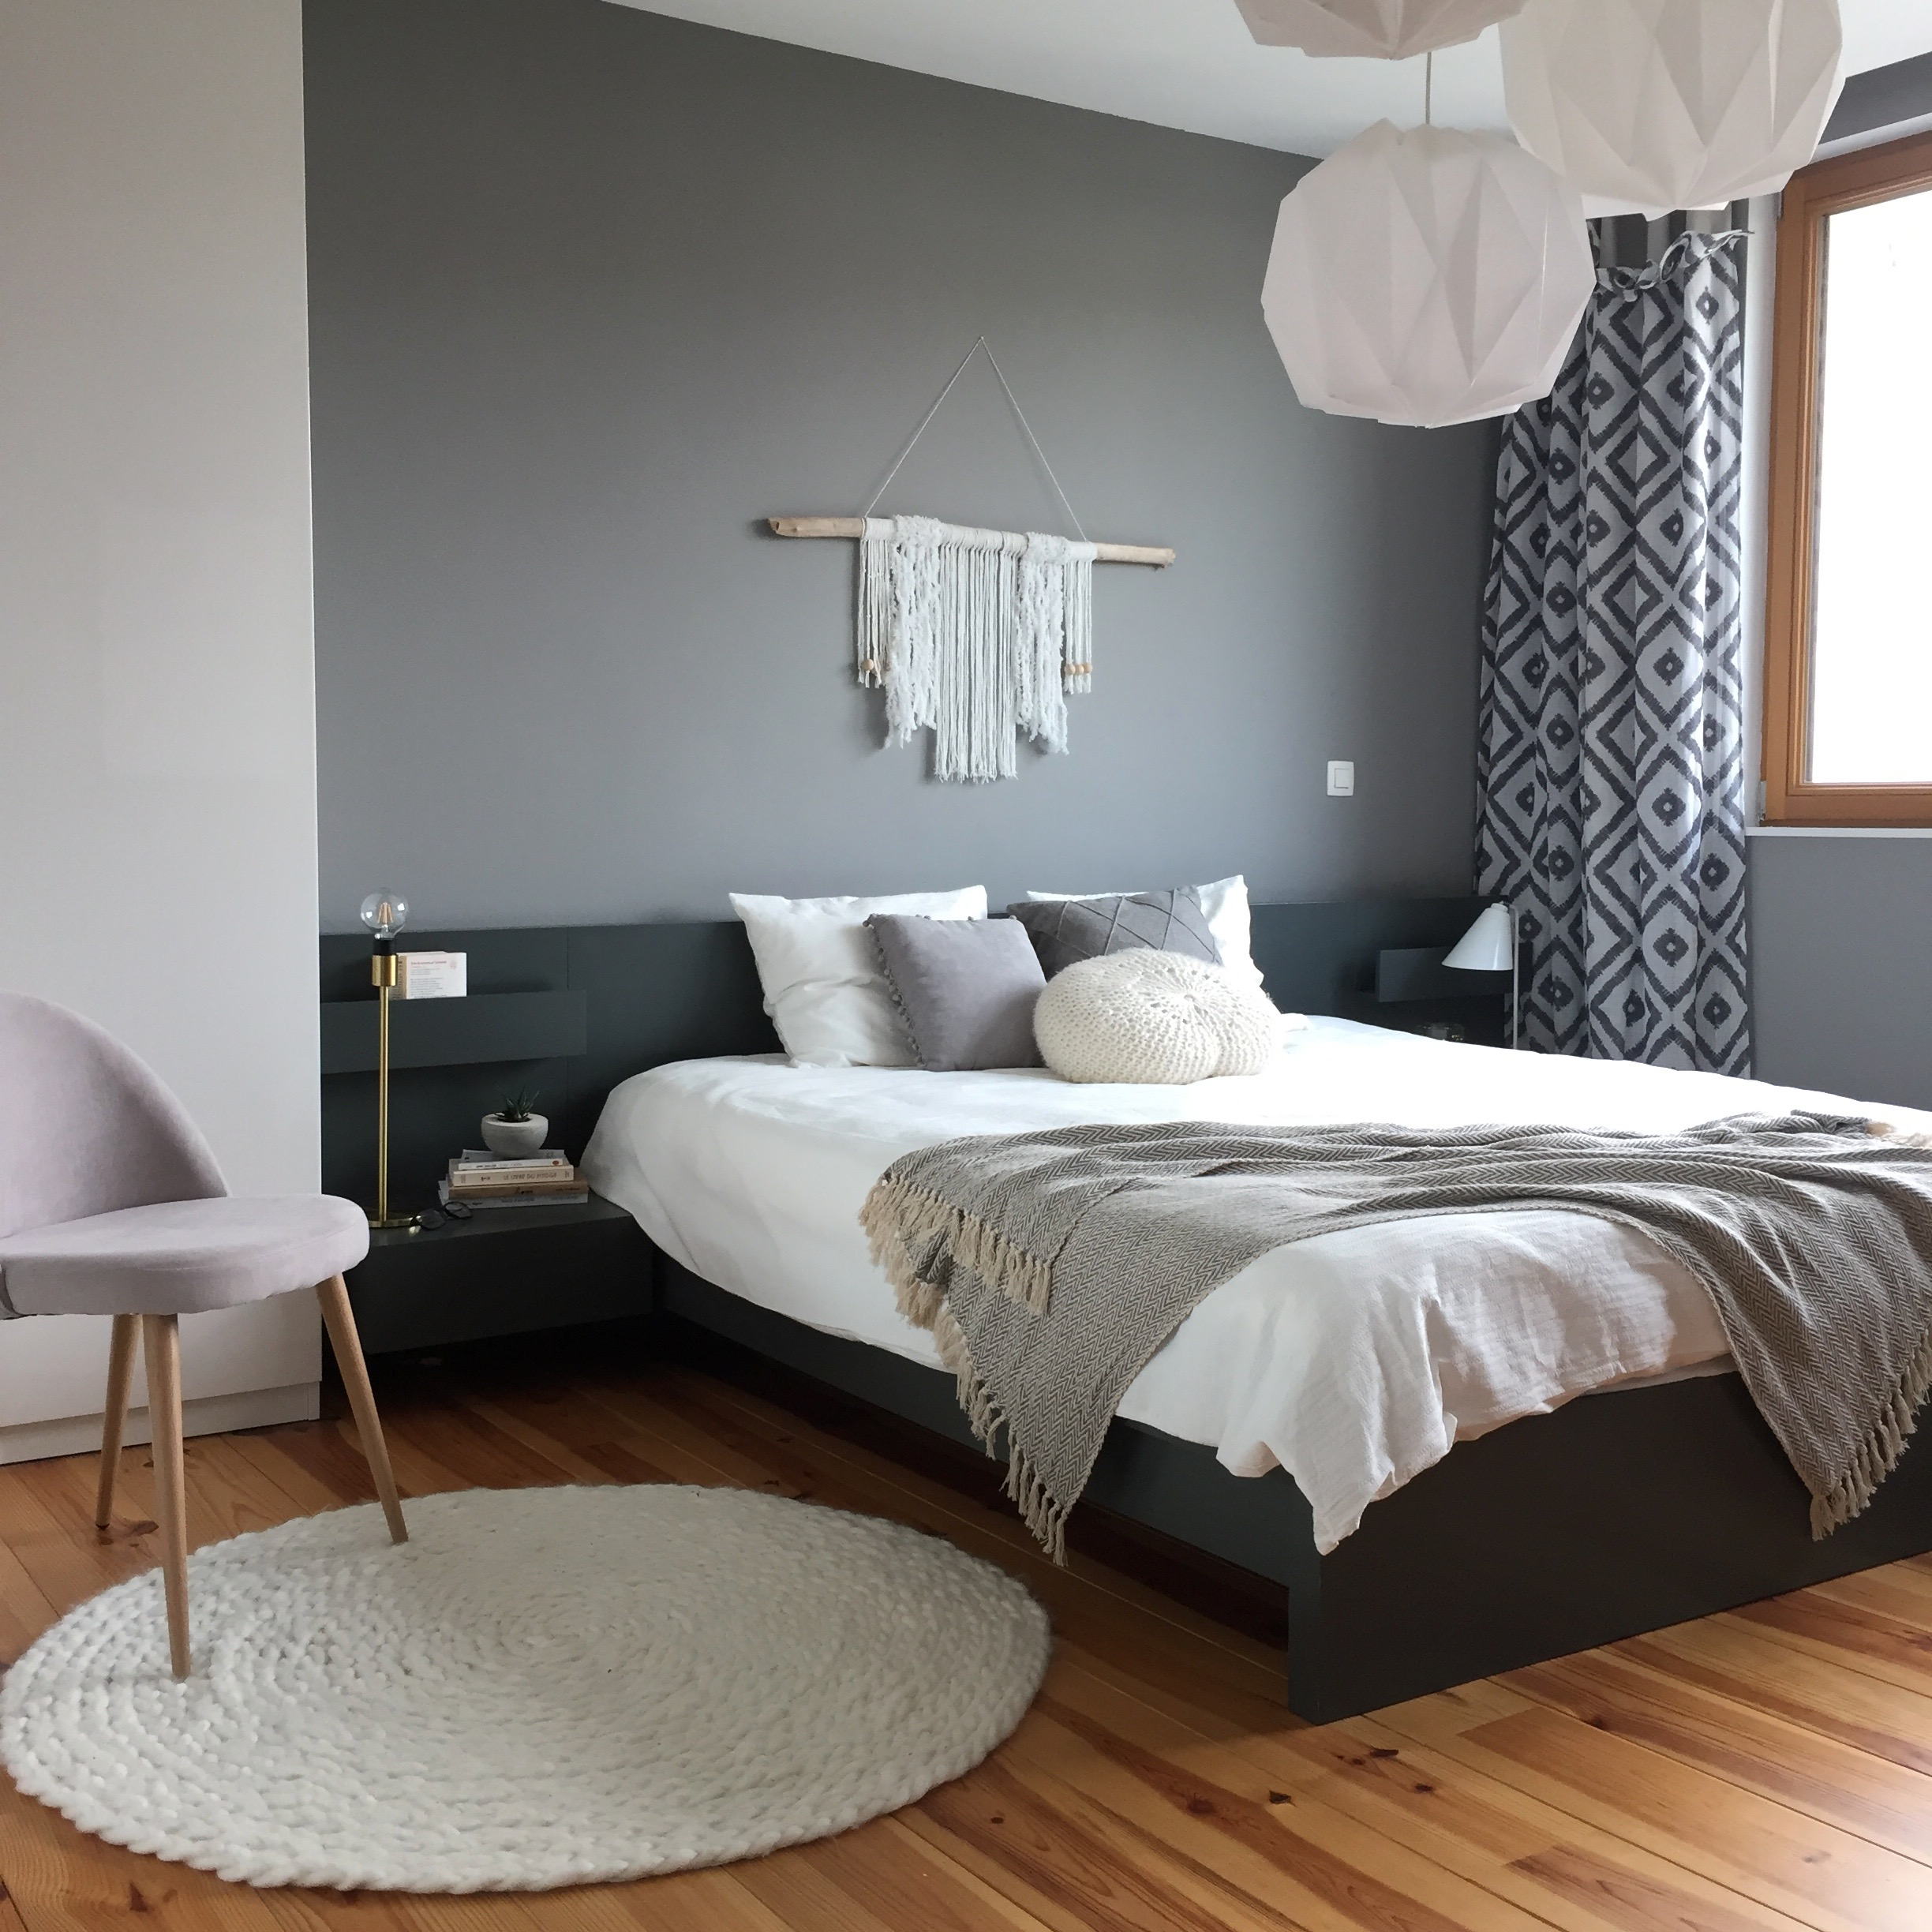 chambre beige et gris idee deco chambre adulte gris couleur de la peinture de la chambre adulte. Black Bedroom Furniture Sets. Home Design Ideas